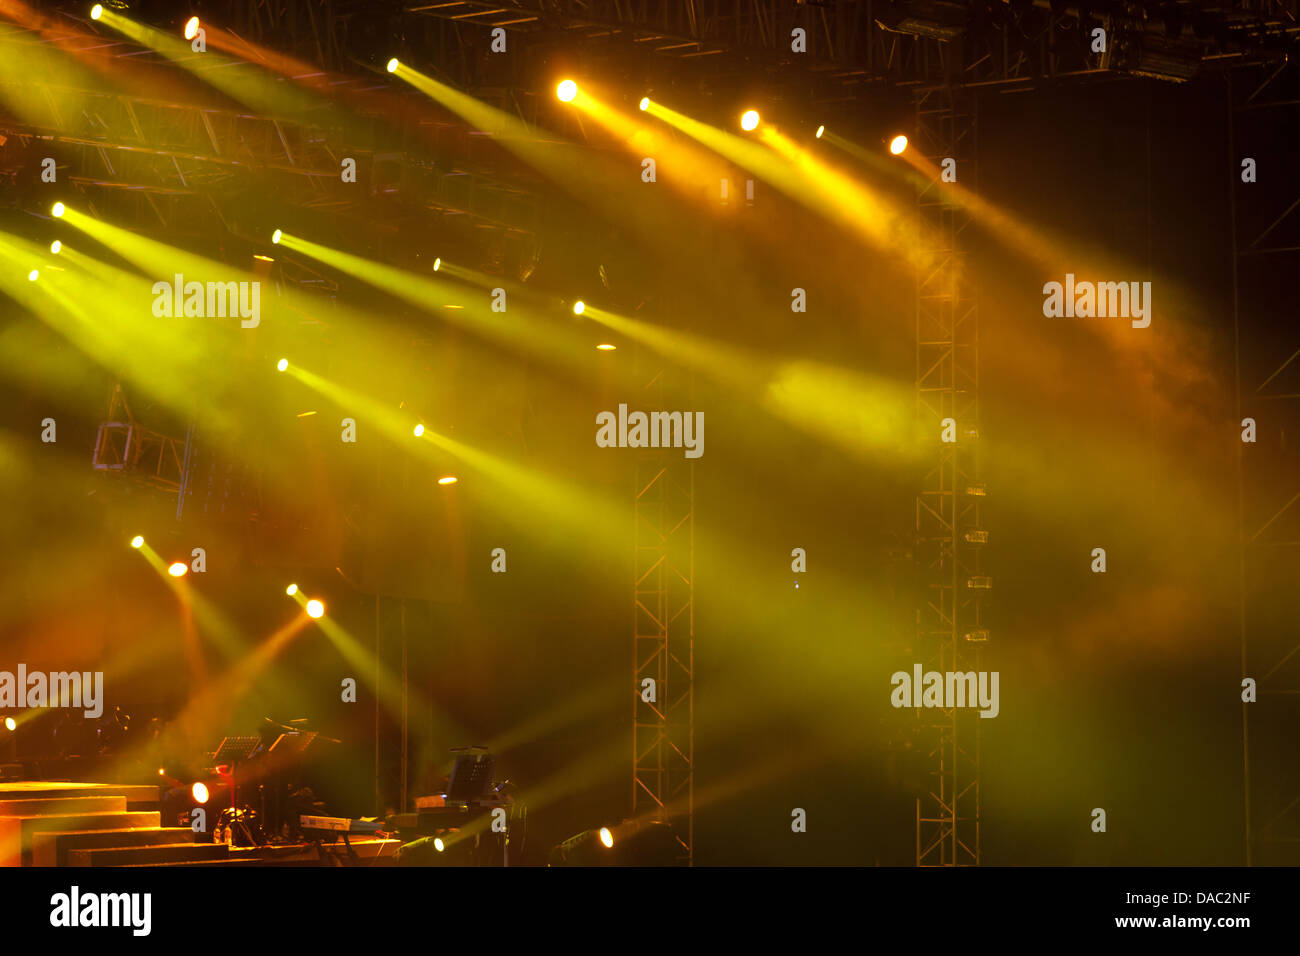 Image of yellow stage lights, thick fog creates drama - Stock Image